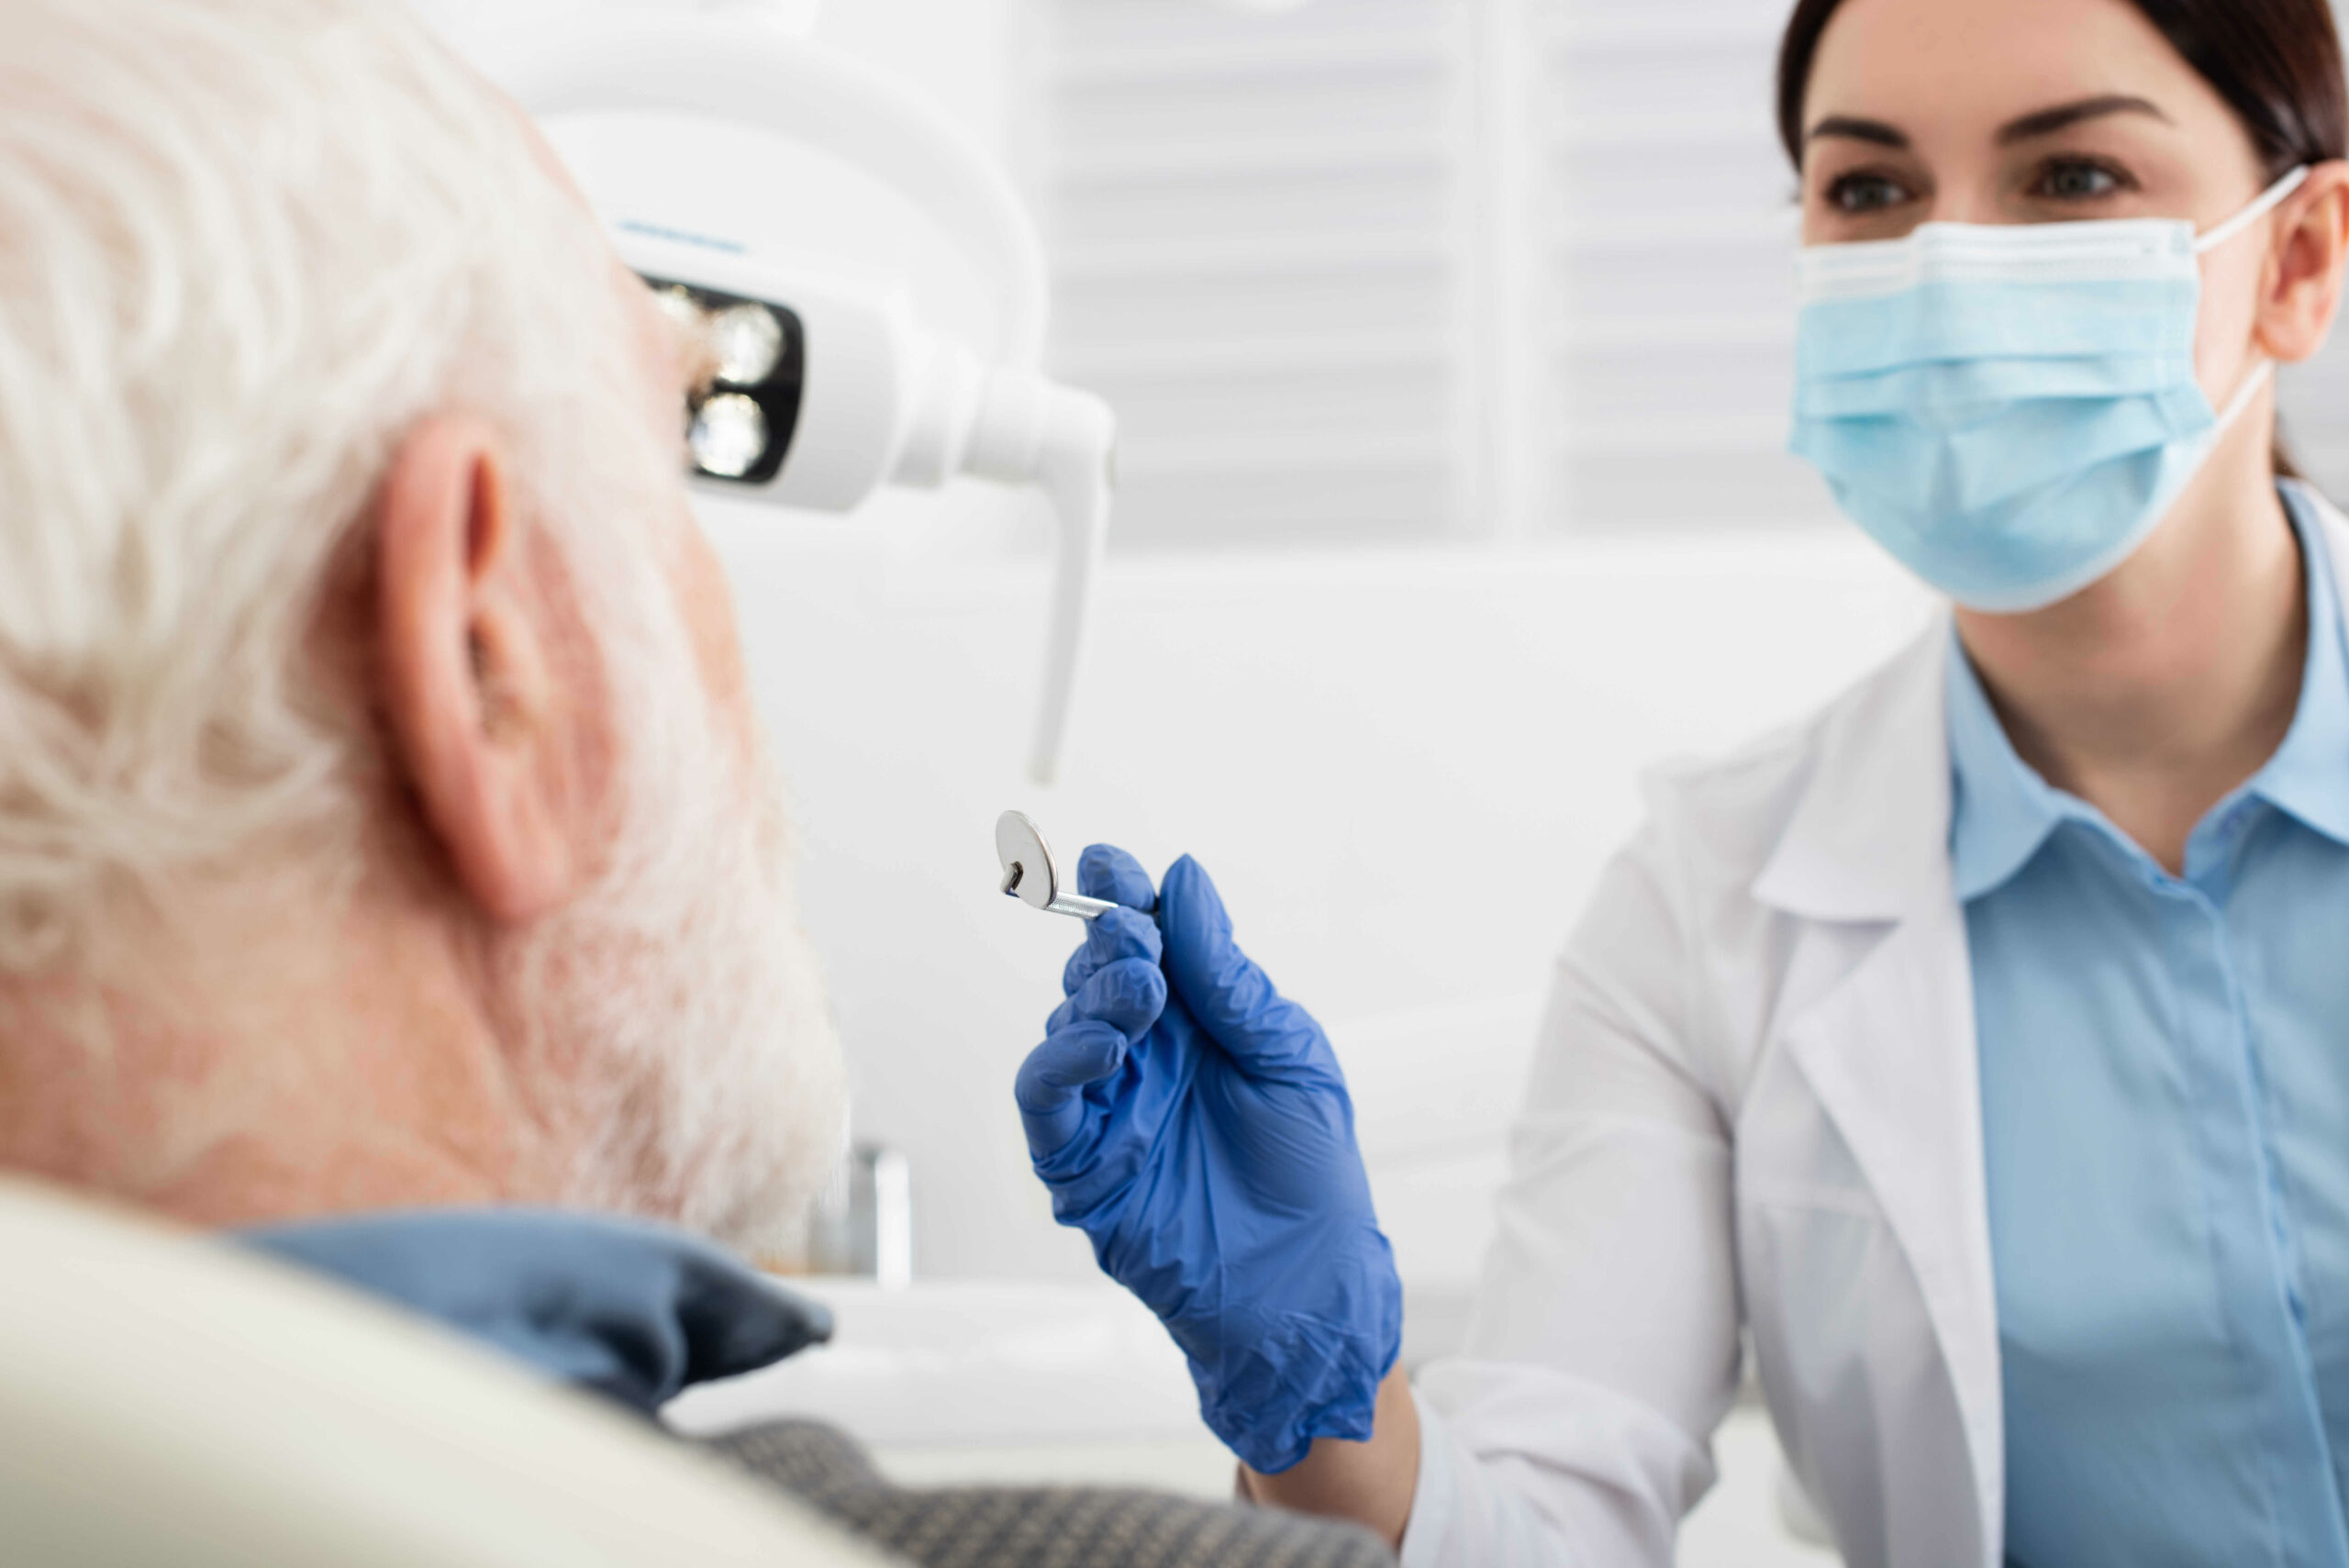 senior-man-having-teeth-examination-by-dentist-in-latex-gloves-with-mirror-in-clinic-in-chicago